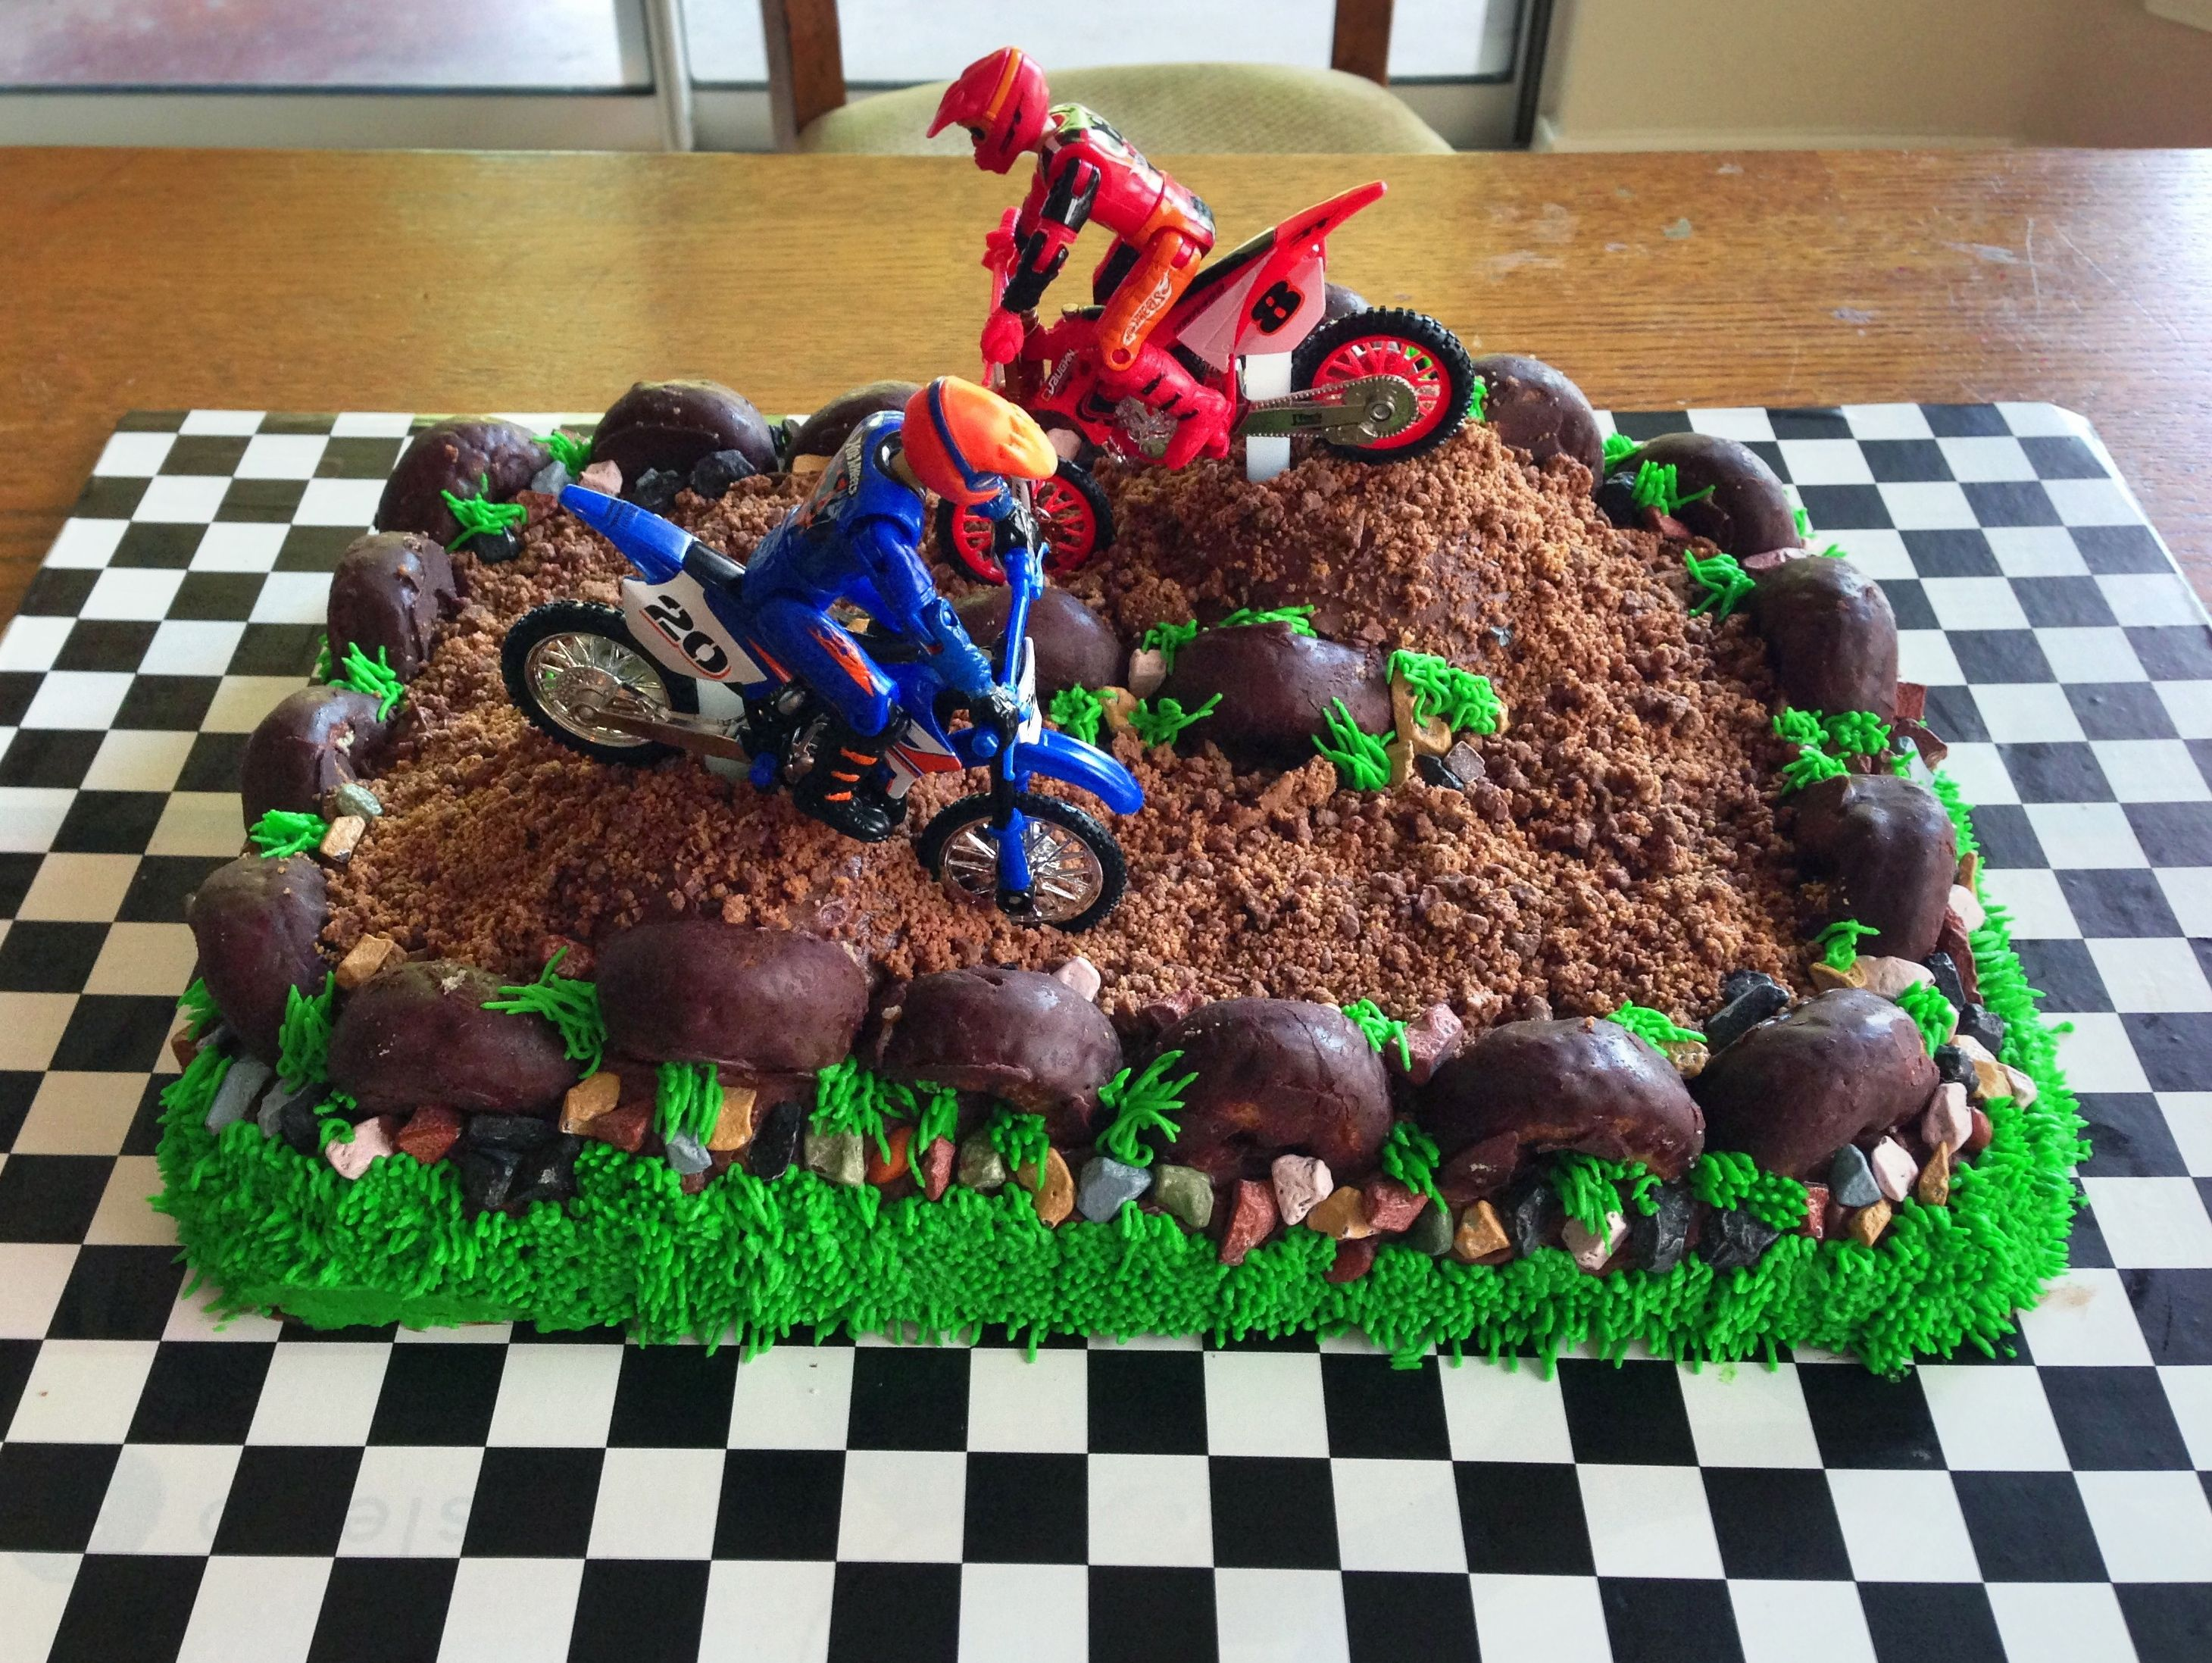 Fine Dirt Bike Cake For My 4 Year Old I Used A 11X15 Casserole Pan And Funny Birthday Cards Online Sheoxdamsfinfo